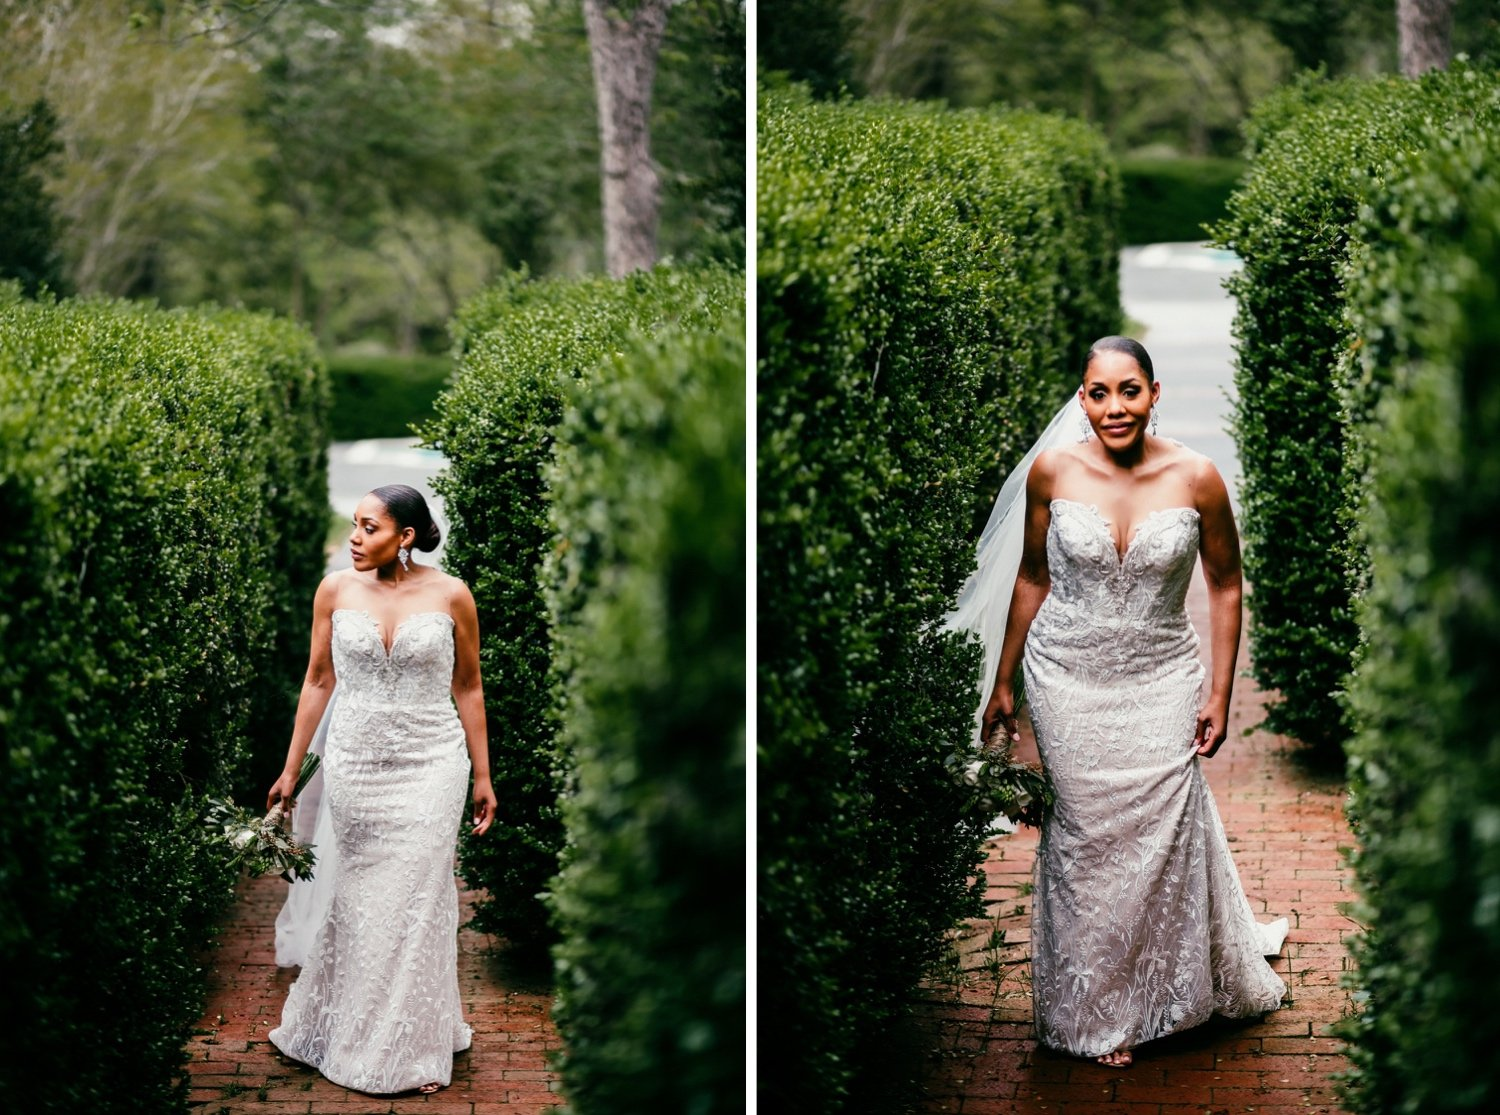 photos of the bride walking alone in the back yard between two lush hedges